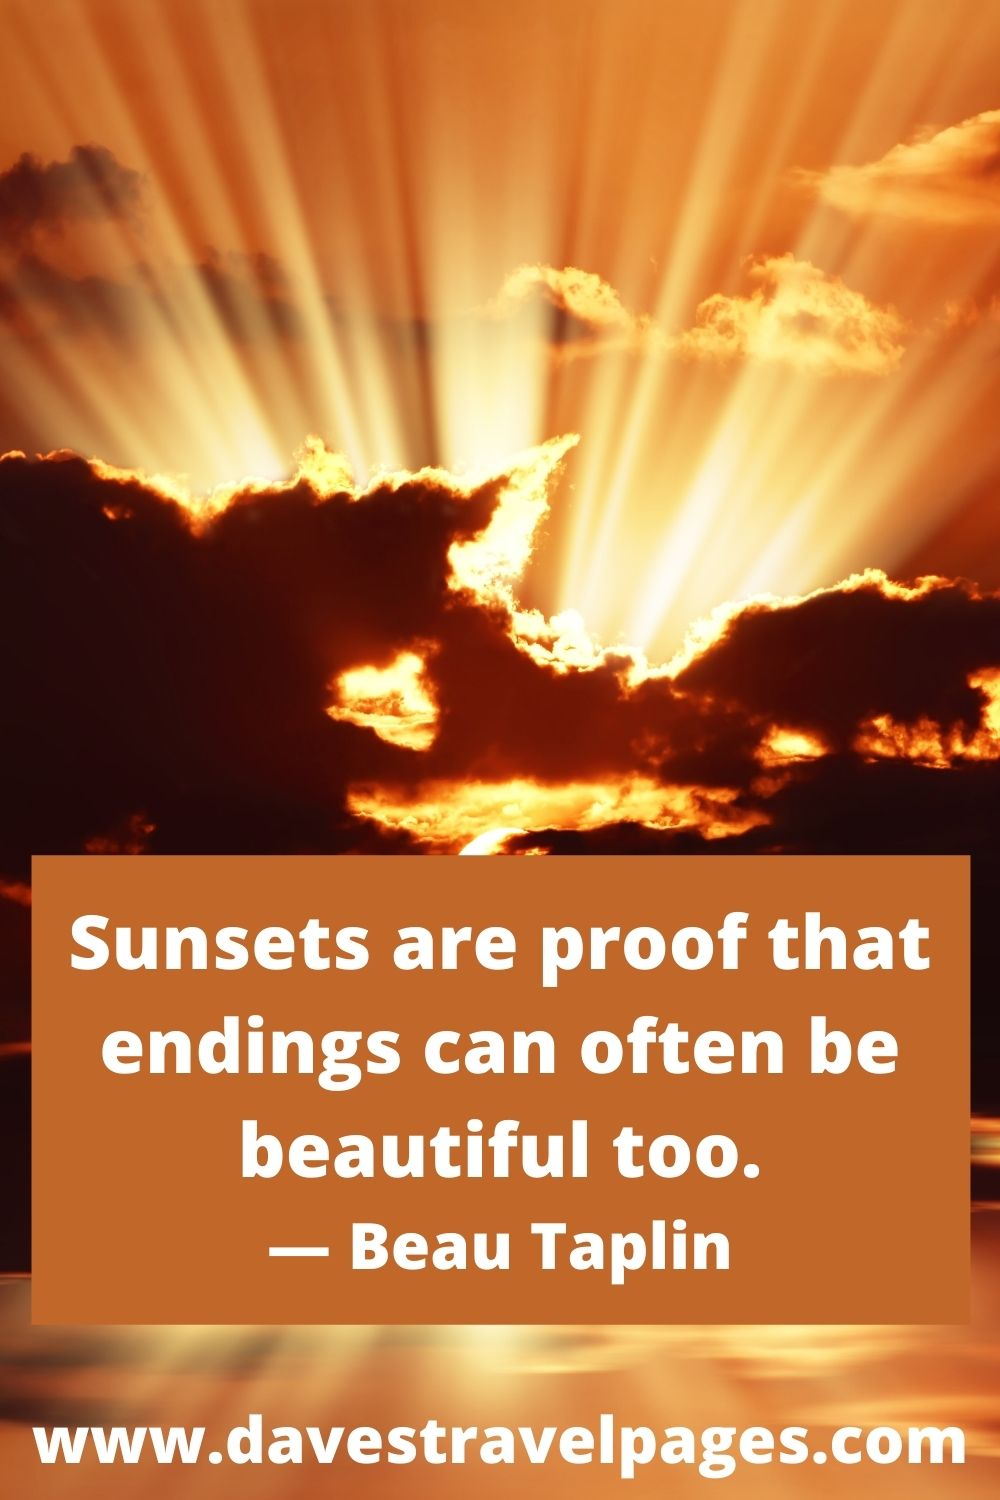 Sunsets are proof that endings can often be beautiful too. — Beau Taplin